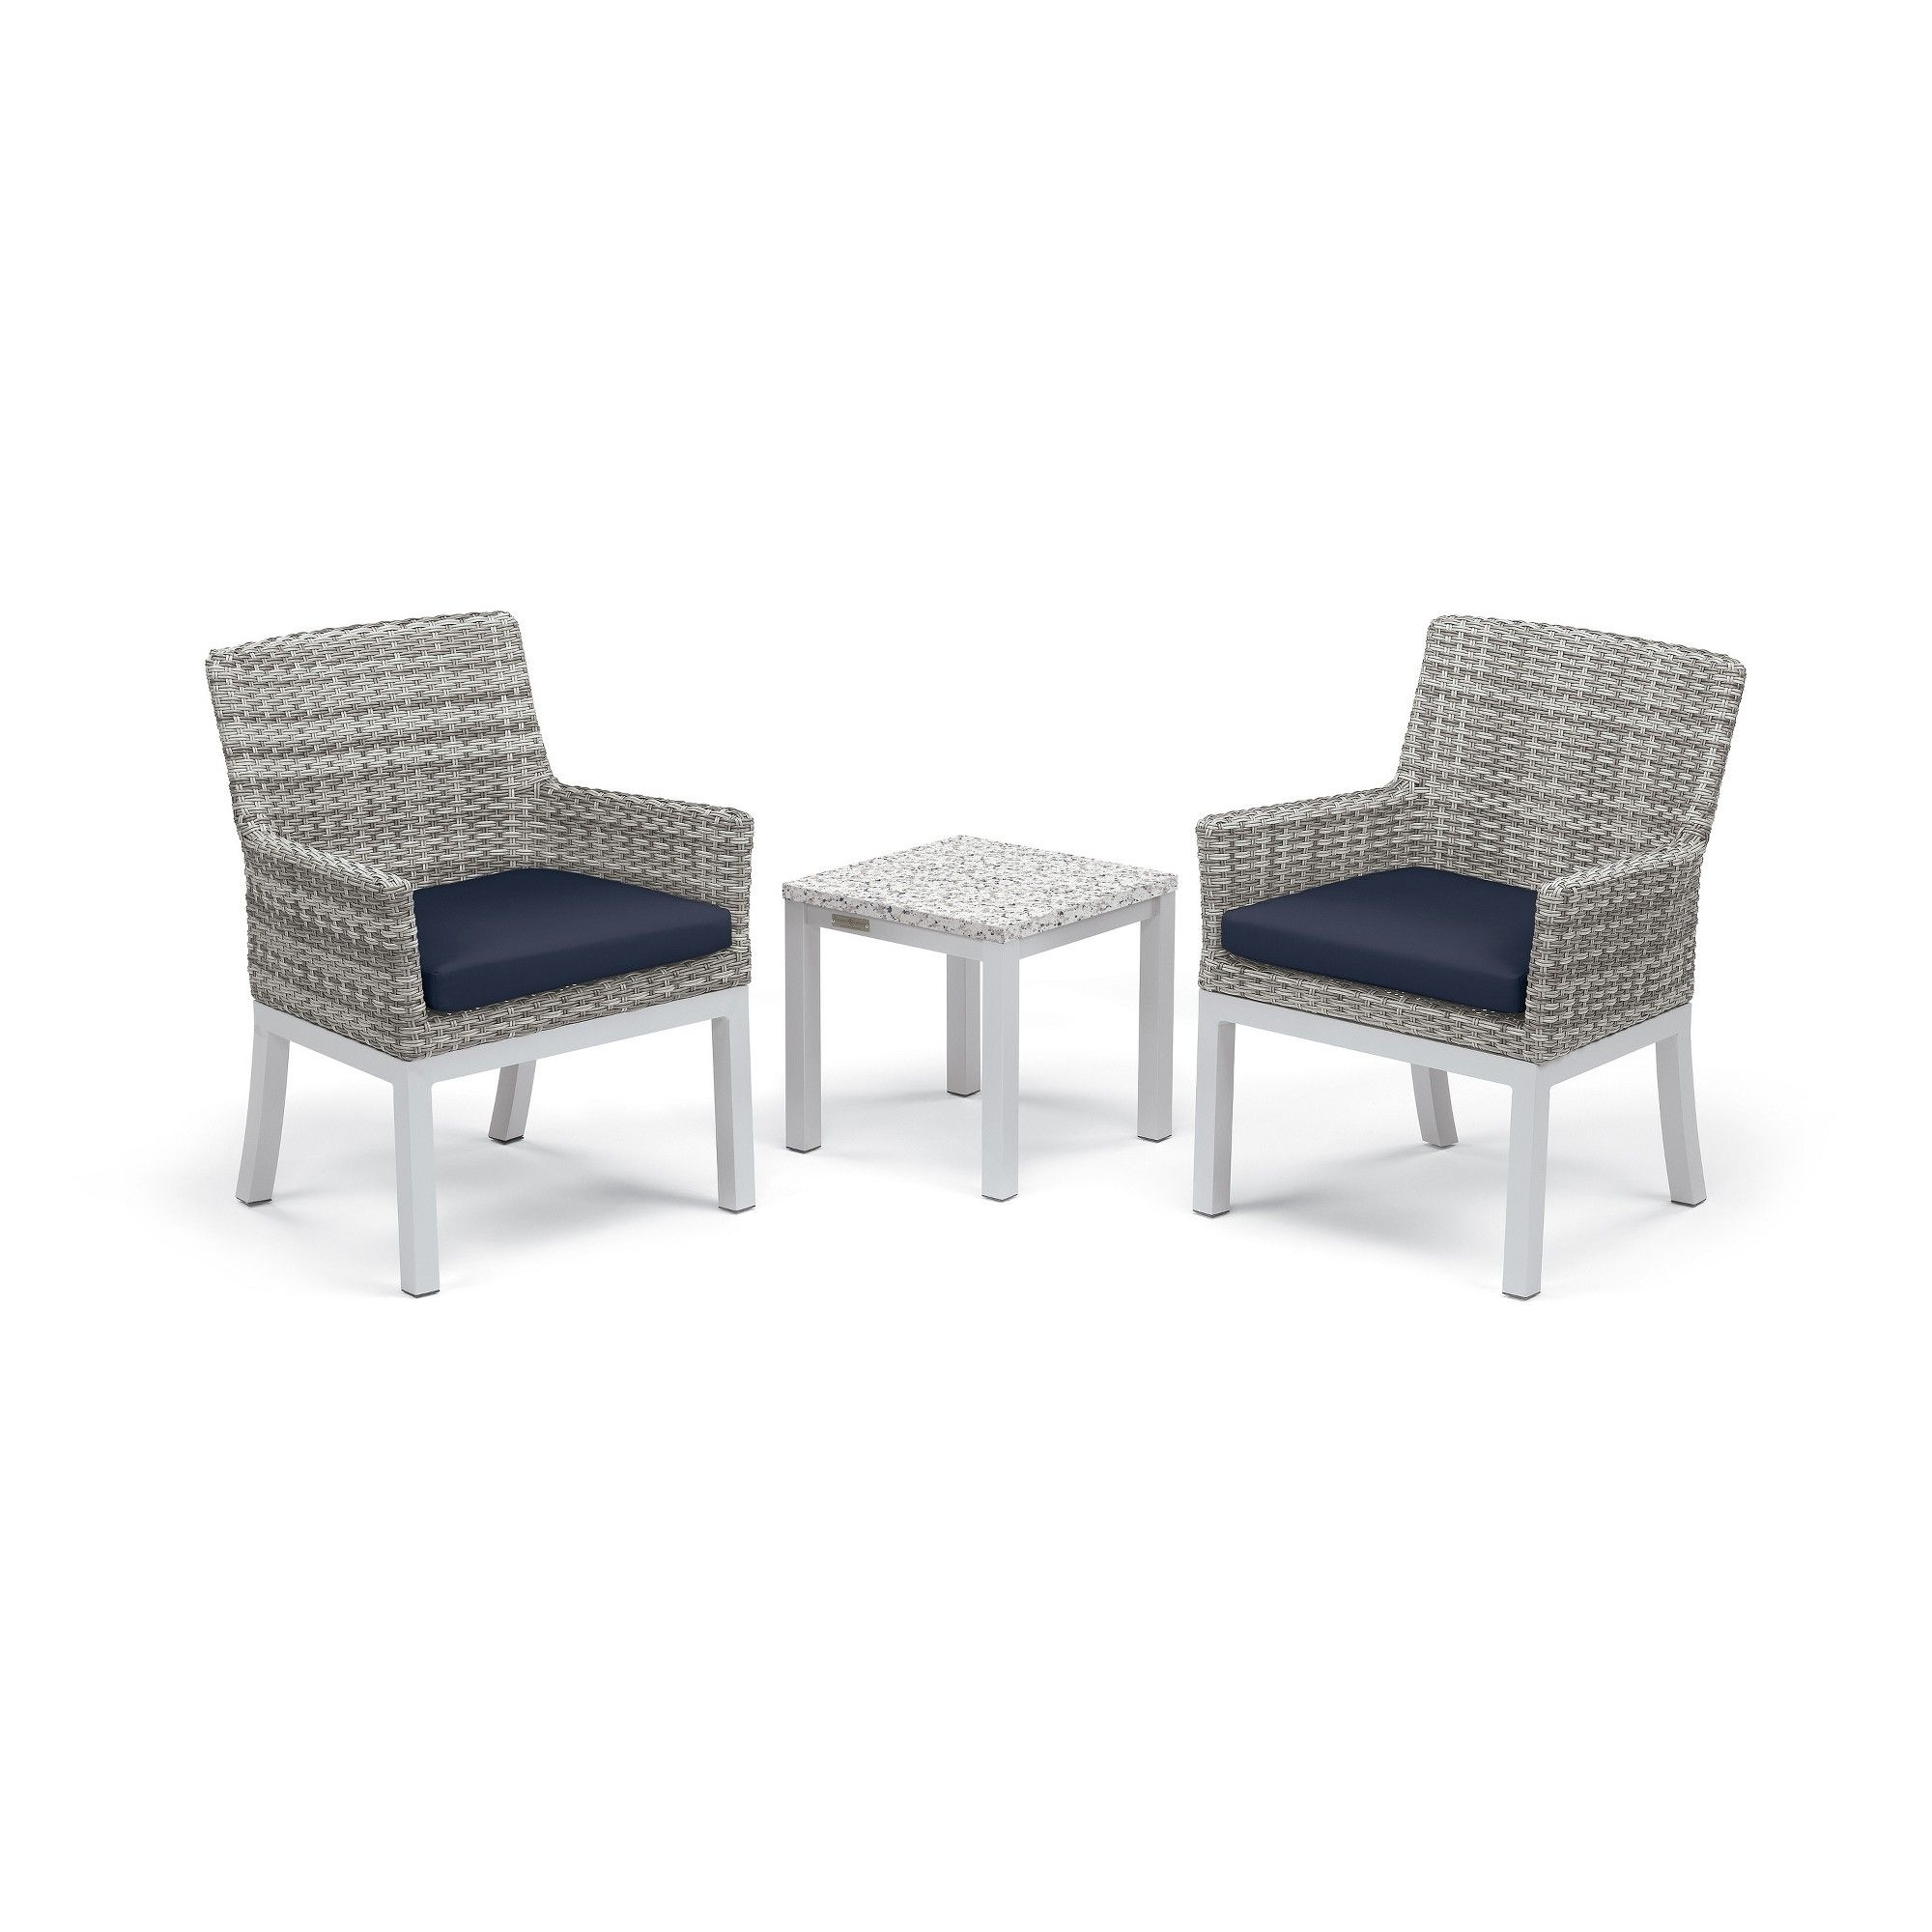 Preferred Patio Conversation Sets With Blue Cushions With Regard To Travira 3pc Conversation Set With End Table Powder Coated Aluminum (View 16 of 20)